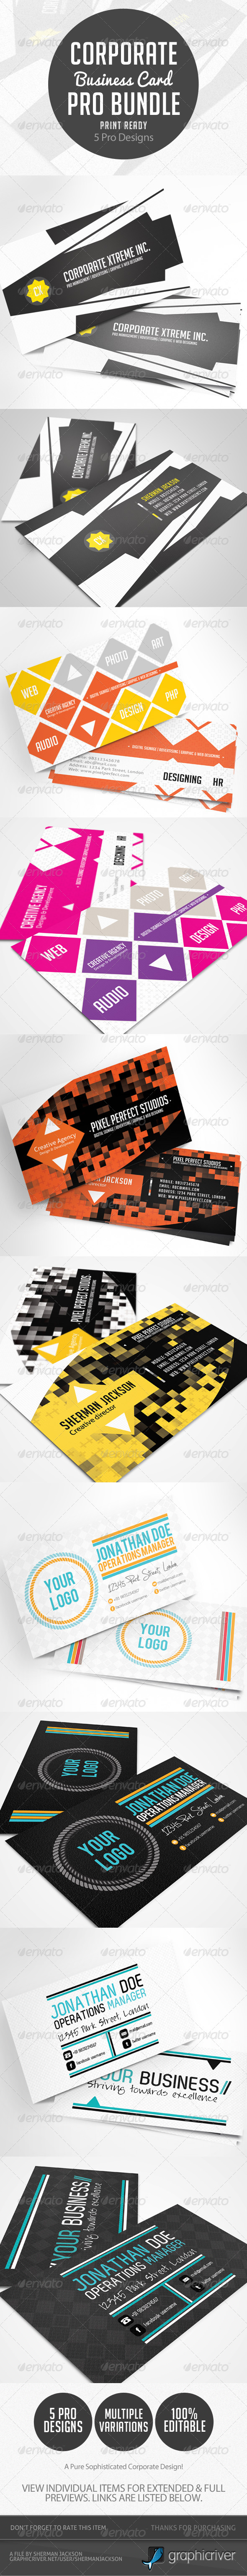 Corporate & Creative Business Card Pro Bundle - Creative Business Cards